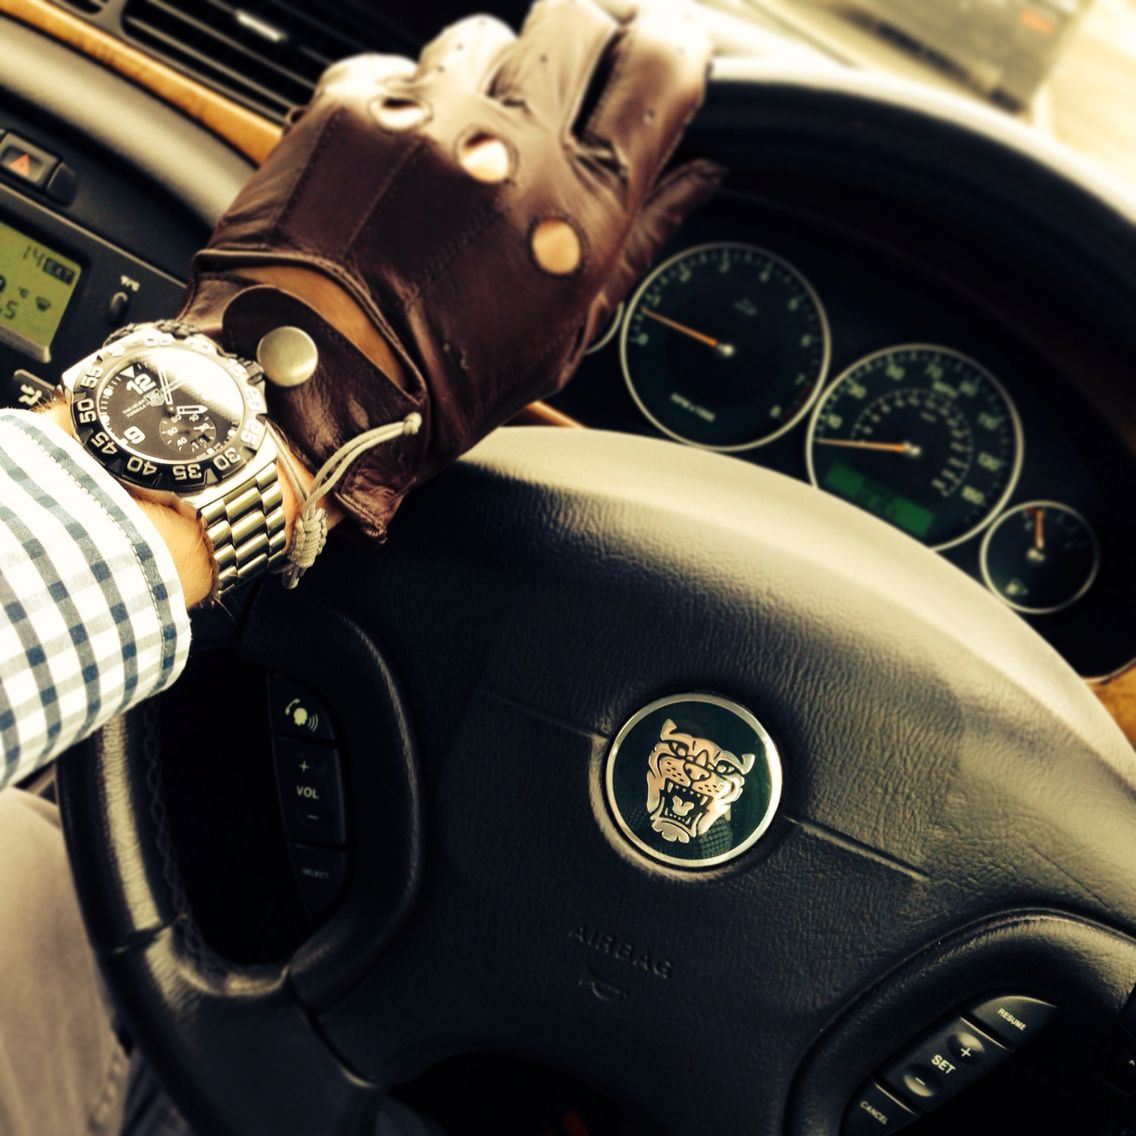 Driving gloves youtube - Jaguar Links Of London Driving Gloves Tag Heuer F1